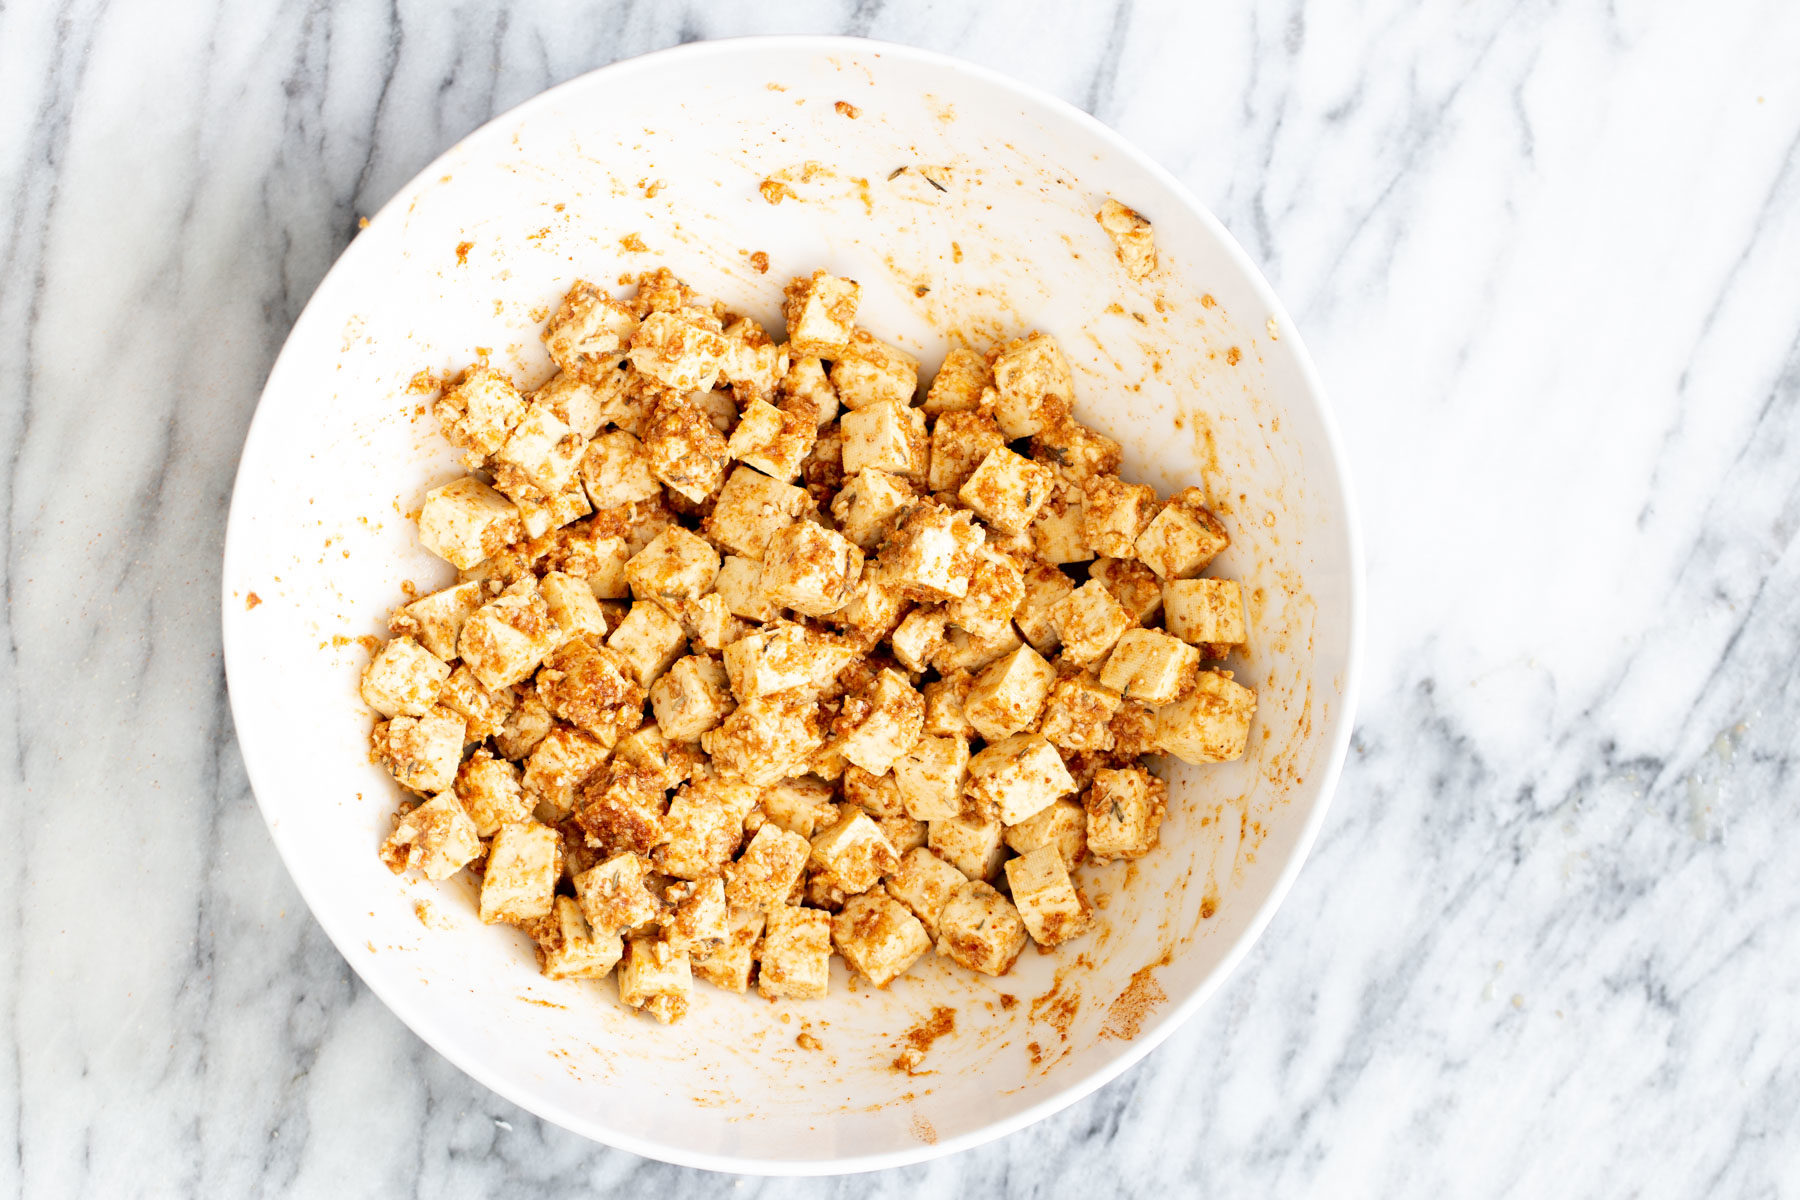 marinated cubed tofu being mixed with crunch topping